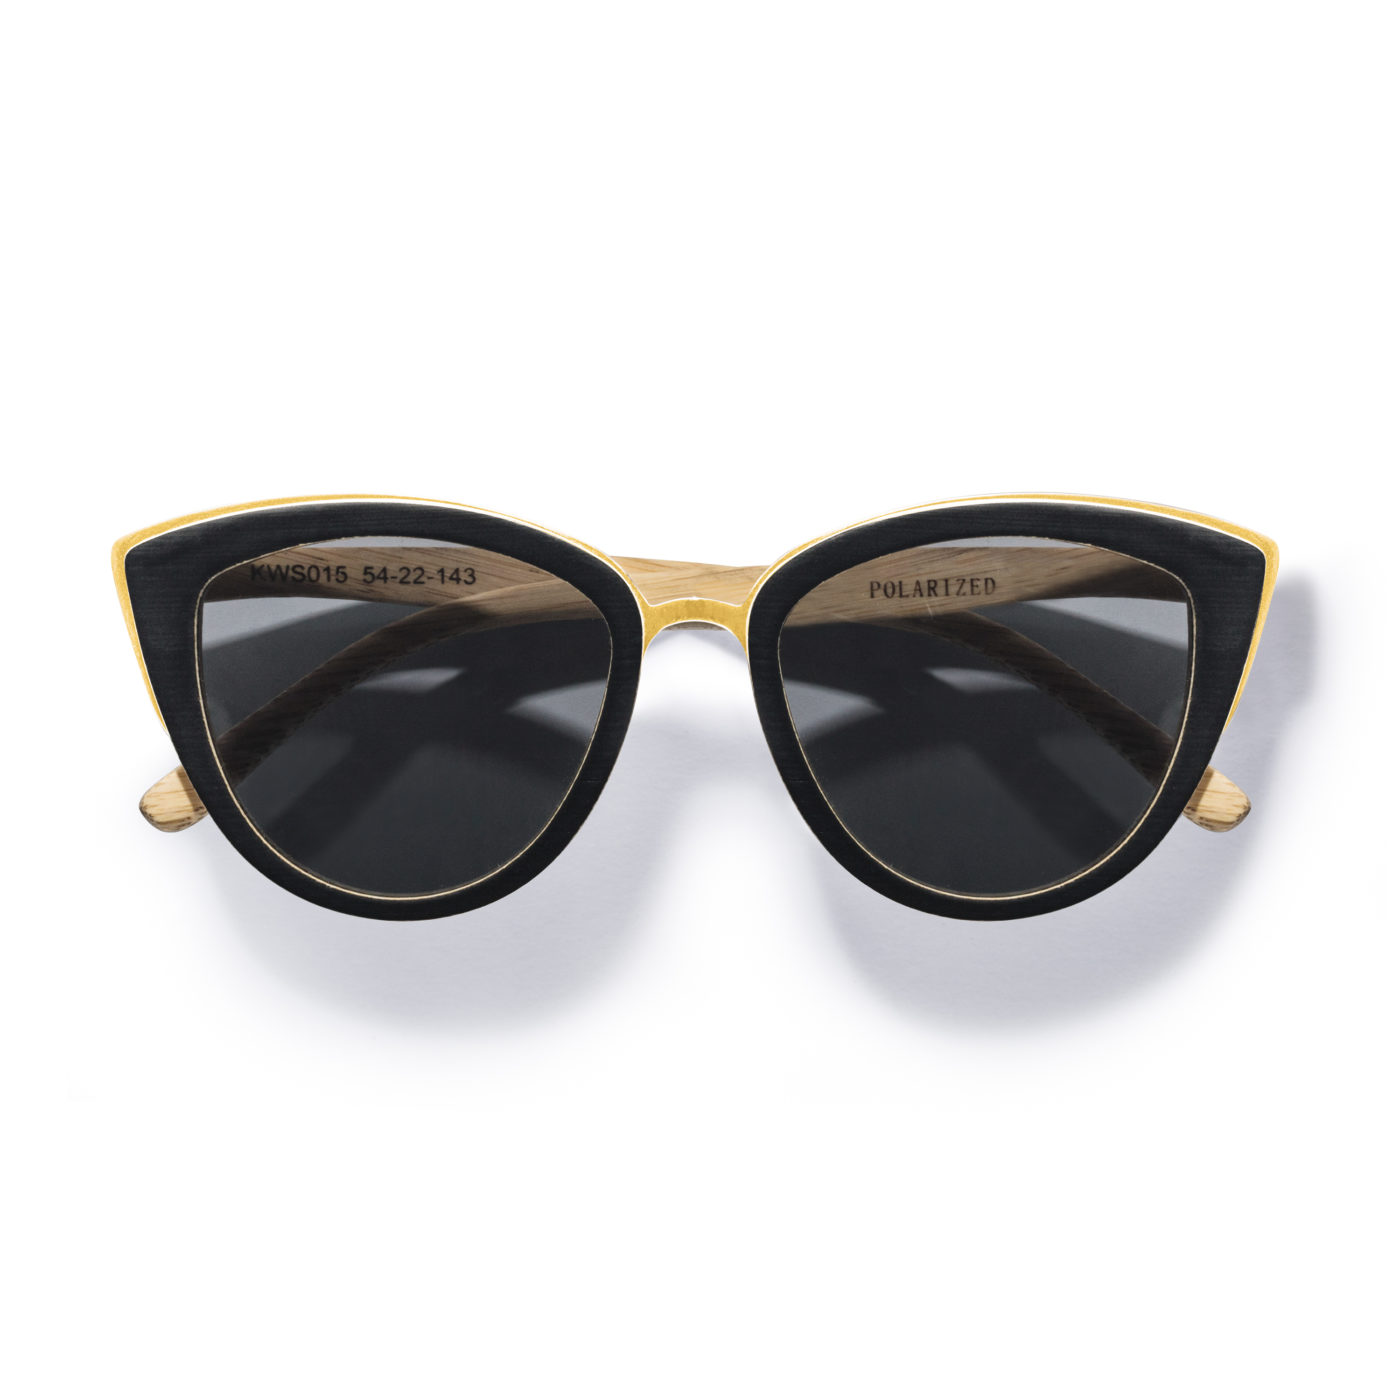 Kraywoods cat eye bamboo sunglasses made with polarized lenses